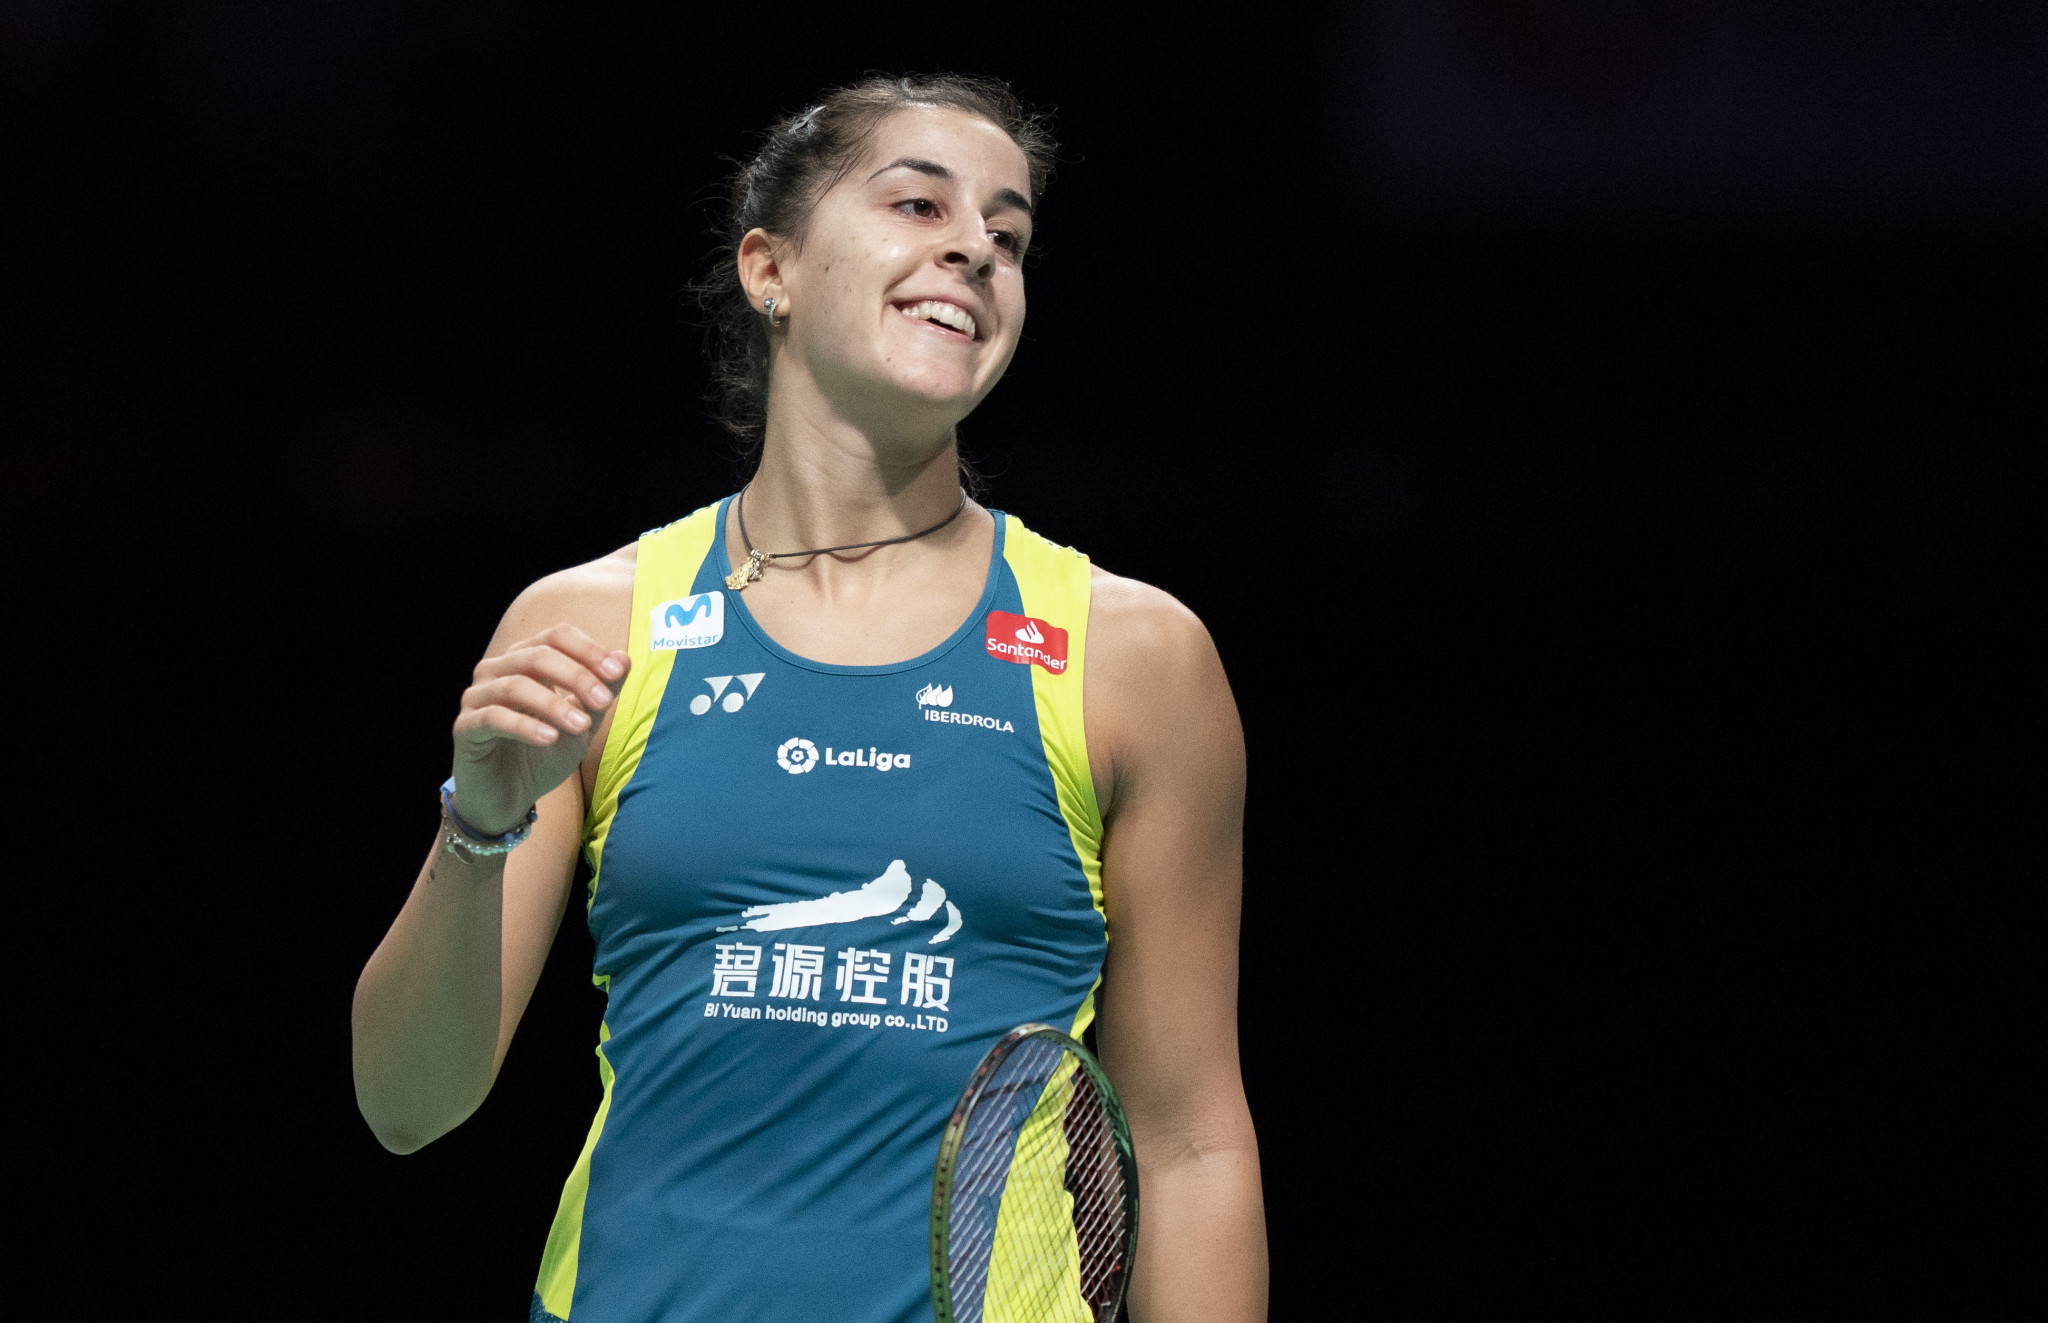 Marin closing in on fifth straight title at European Badminton Championships